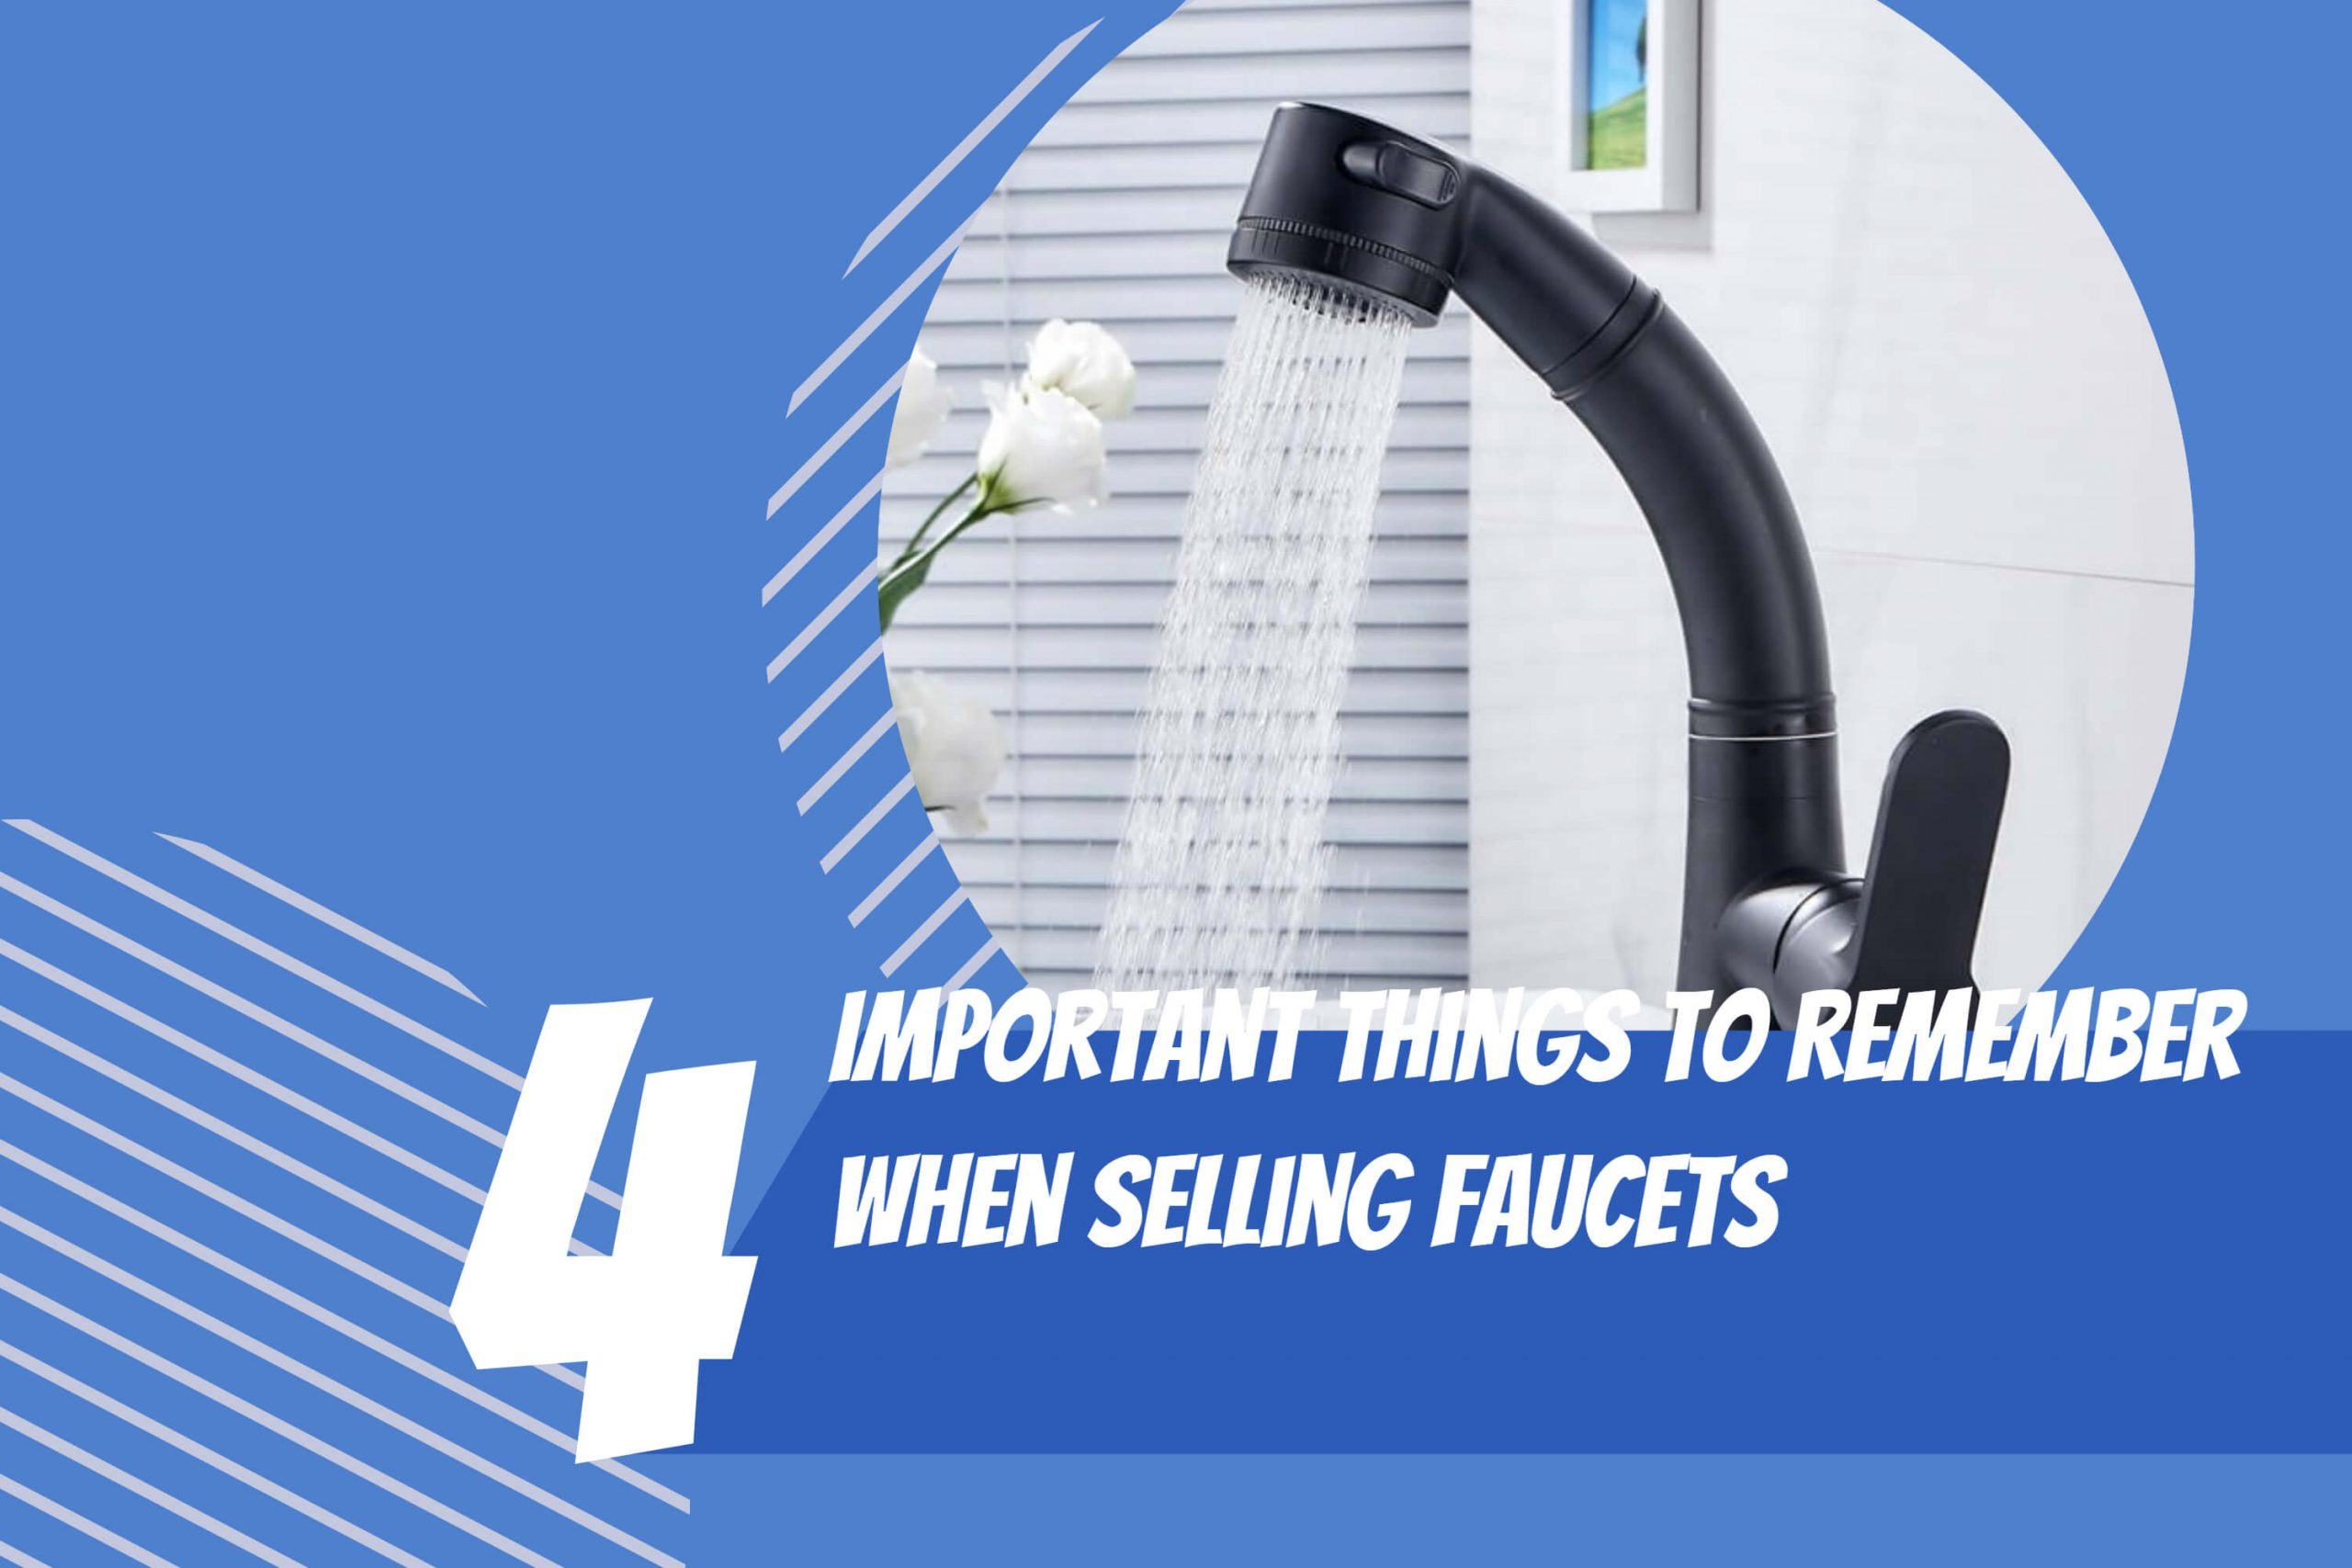 Important Things To Remember When Selling Faucets